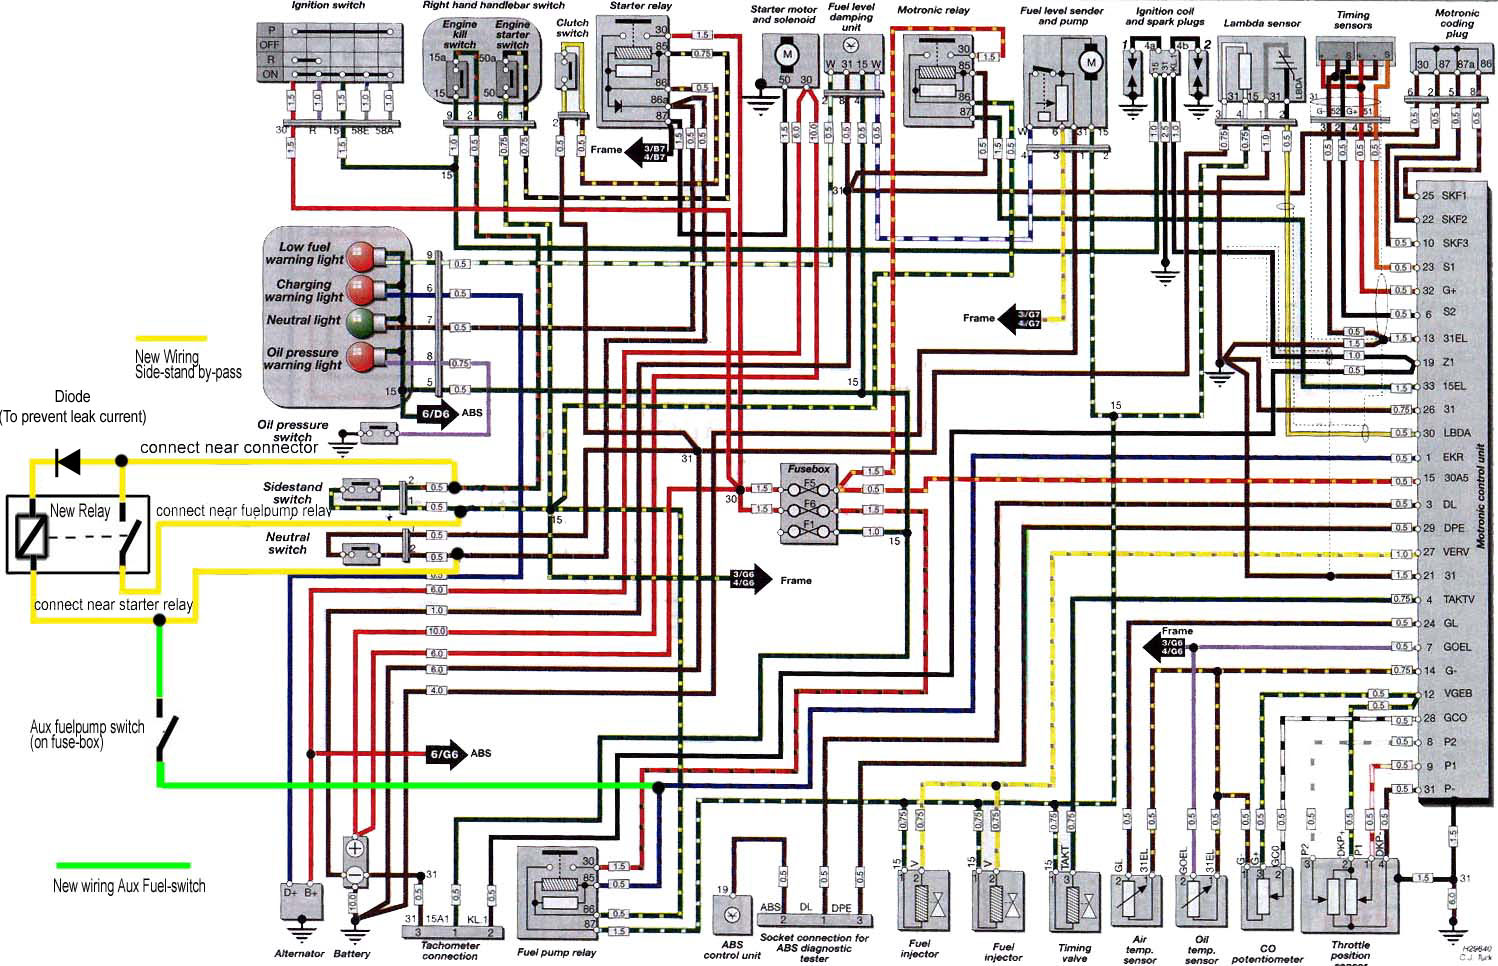 Bmw 1150 Gs Fuse Box Diagram Automotive Circuit Ducati 1098 R1150 Engine Fuel Wiring At Hrqsolutions